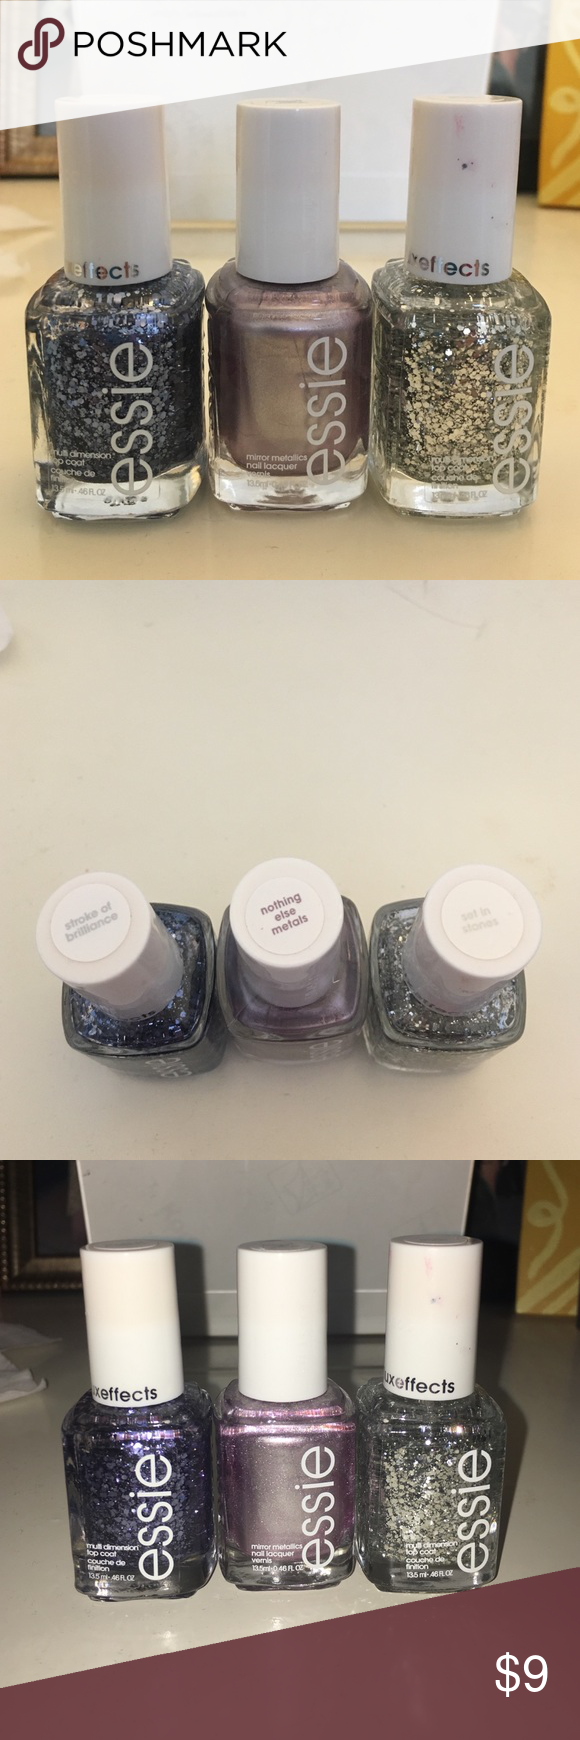 Essie nail polish Set of 3 Essie nail polishes. Each used once or twice. At least 80% left. Still smooth with no chunks. Two are glitter and one is metallic. essie Makeup